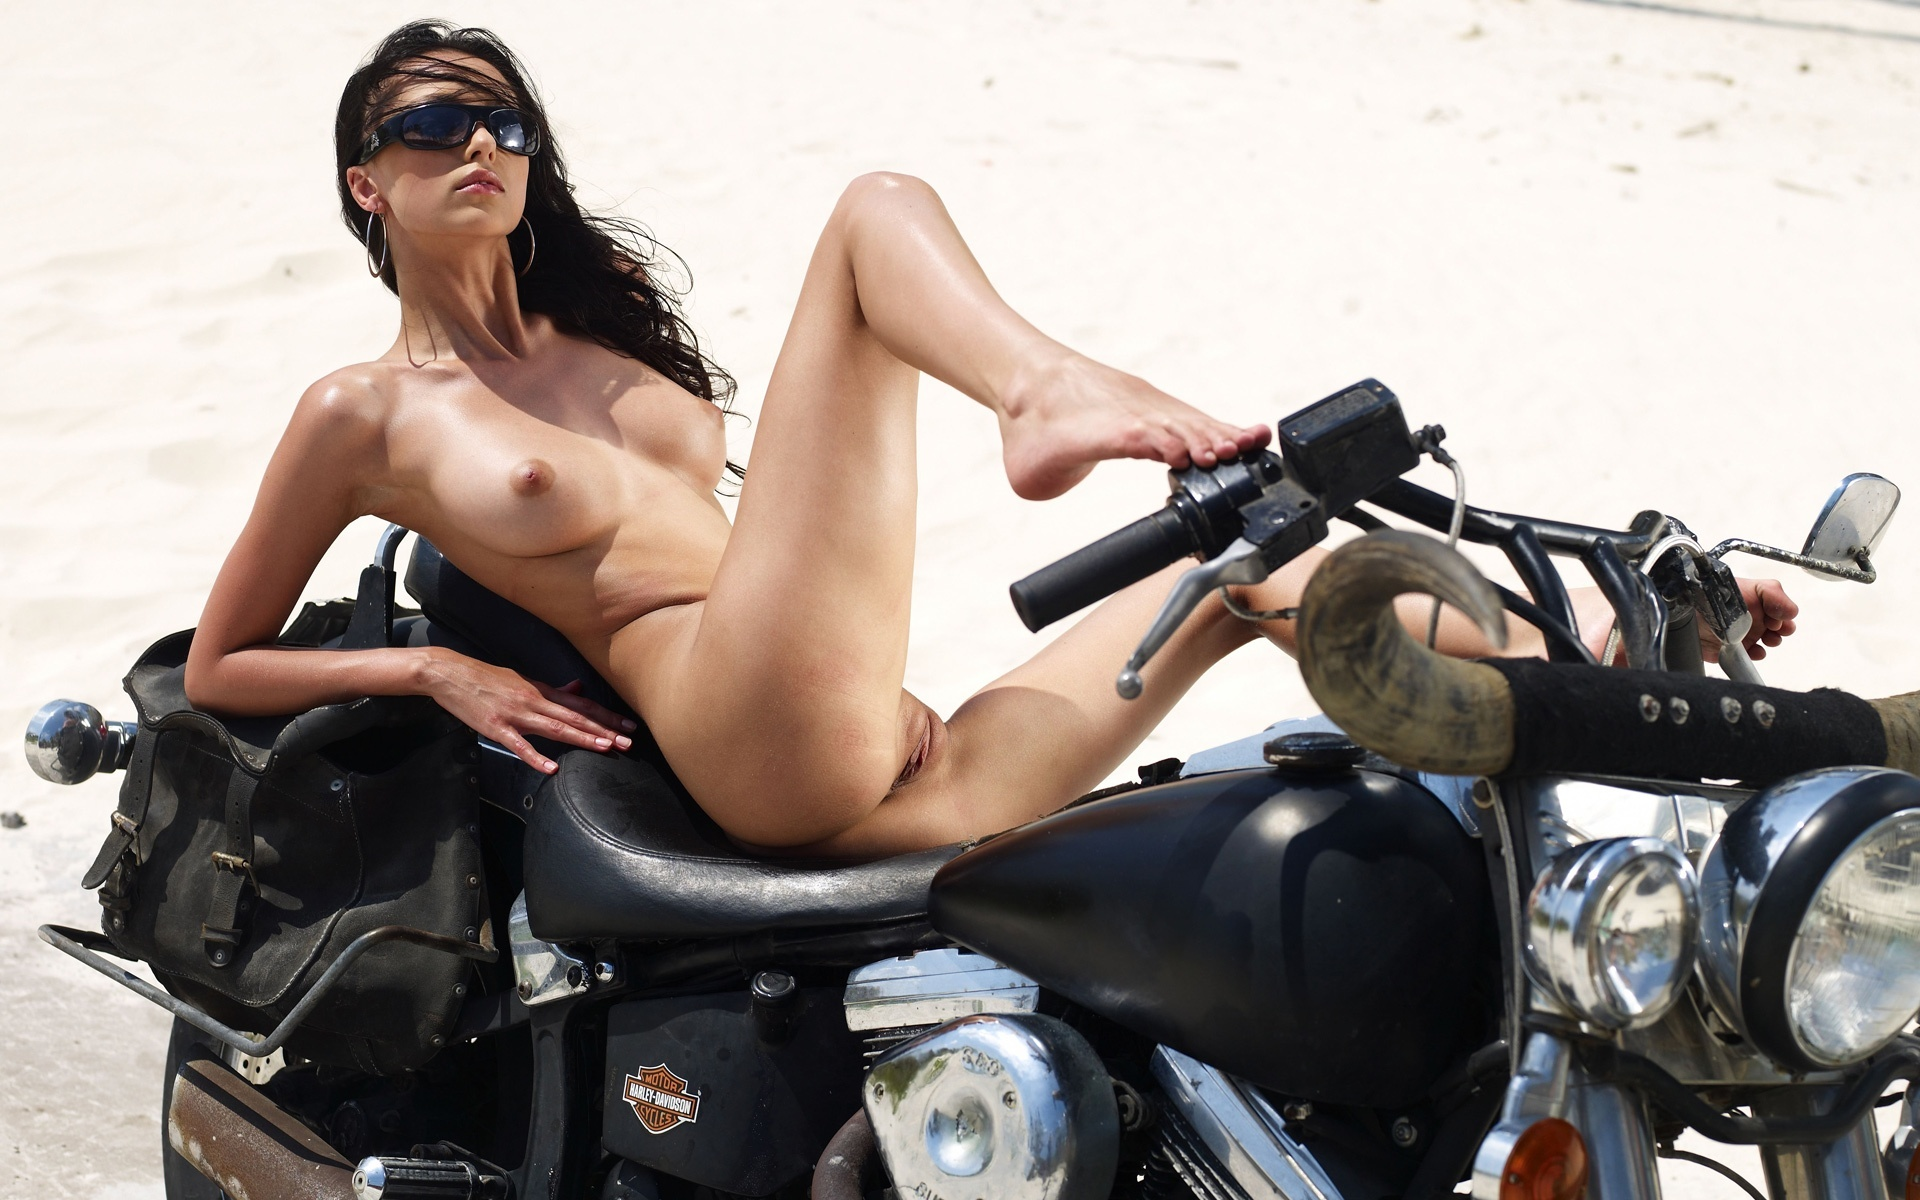 Girl showing pussy on motorcycles